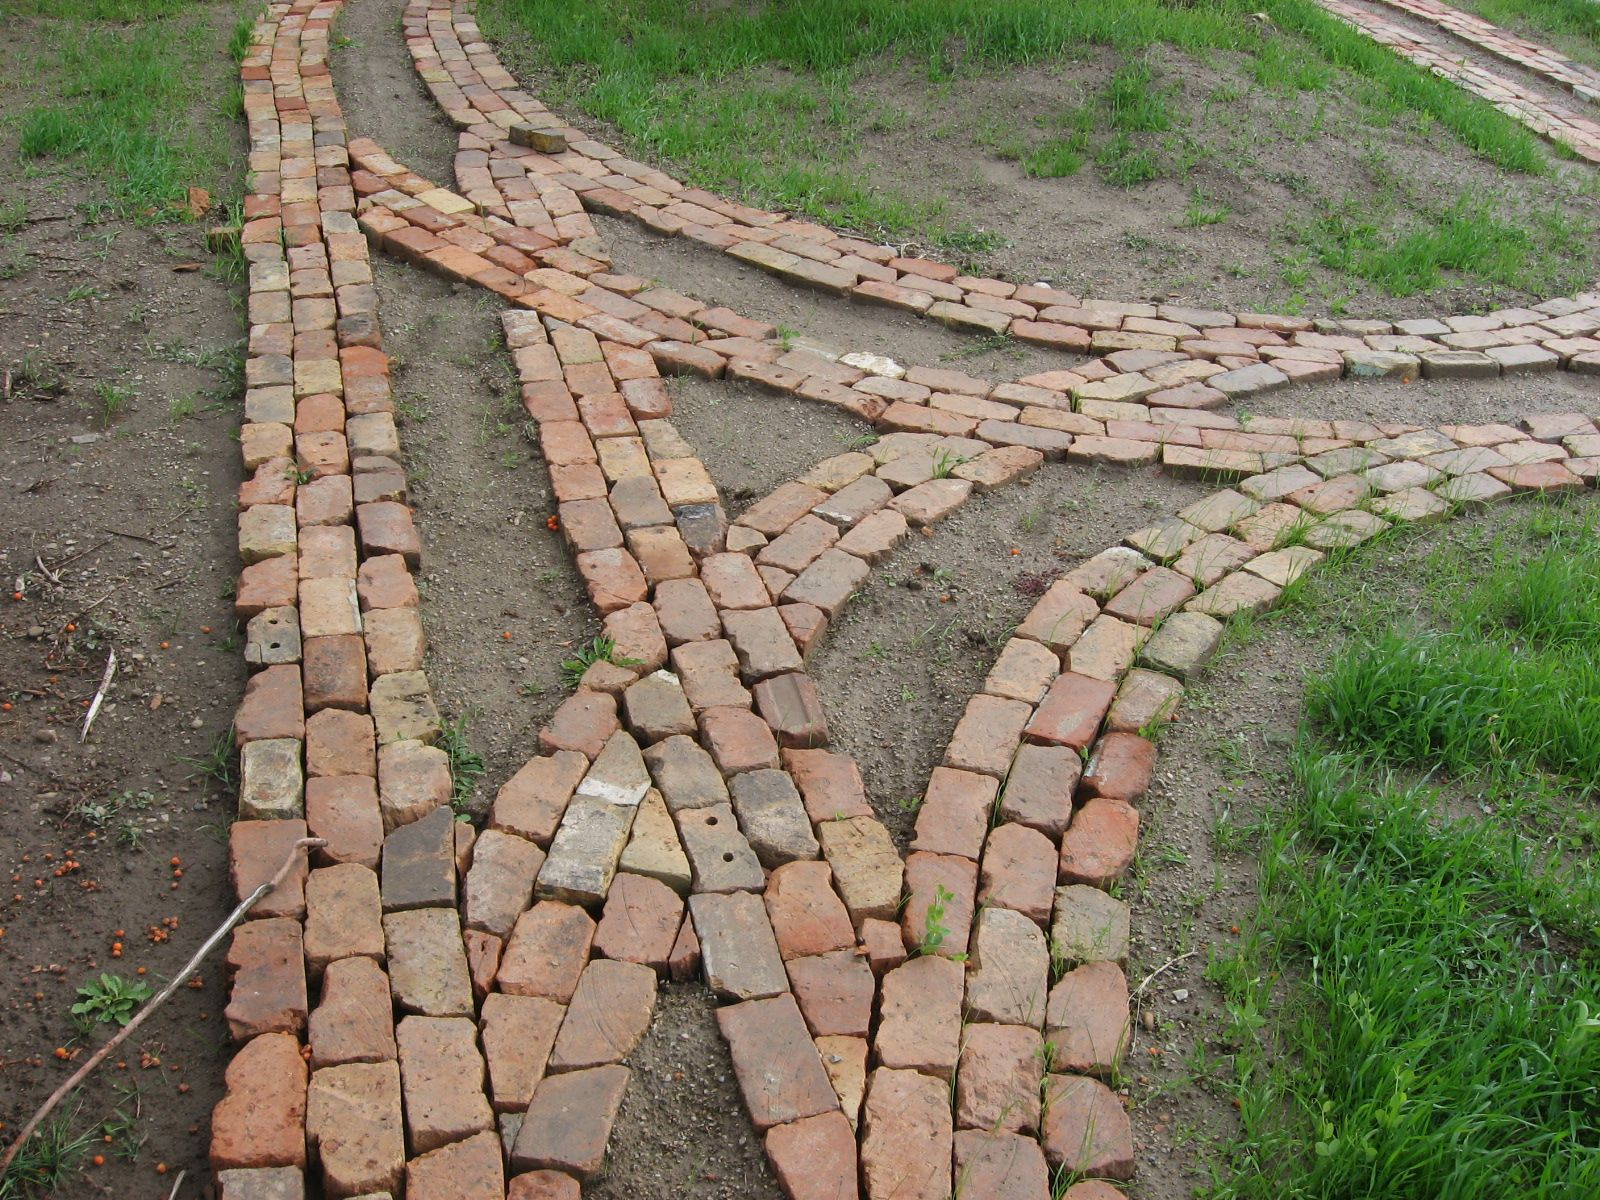 Reclaimed brick garden path under constructions dirt for Paving designs for small garden path